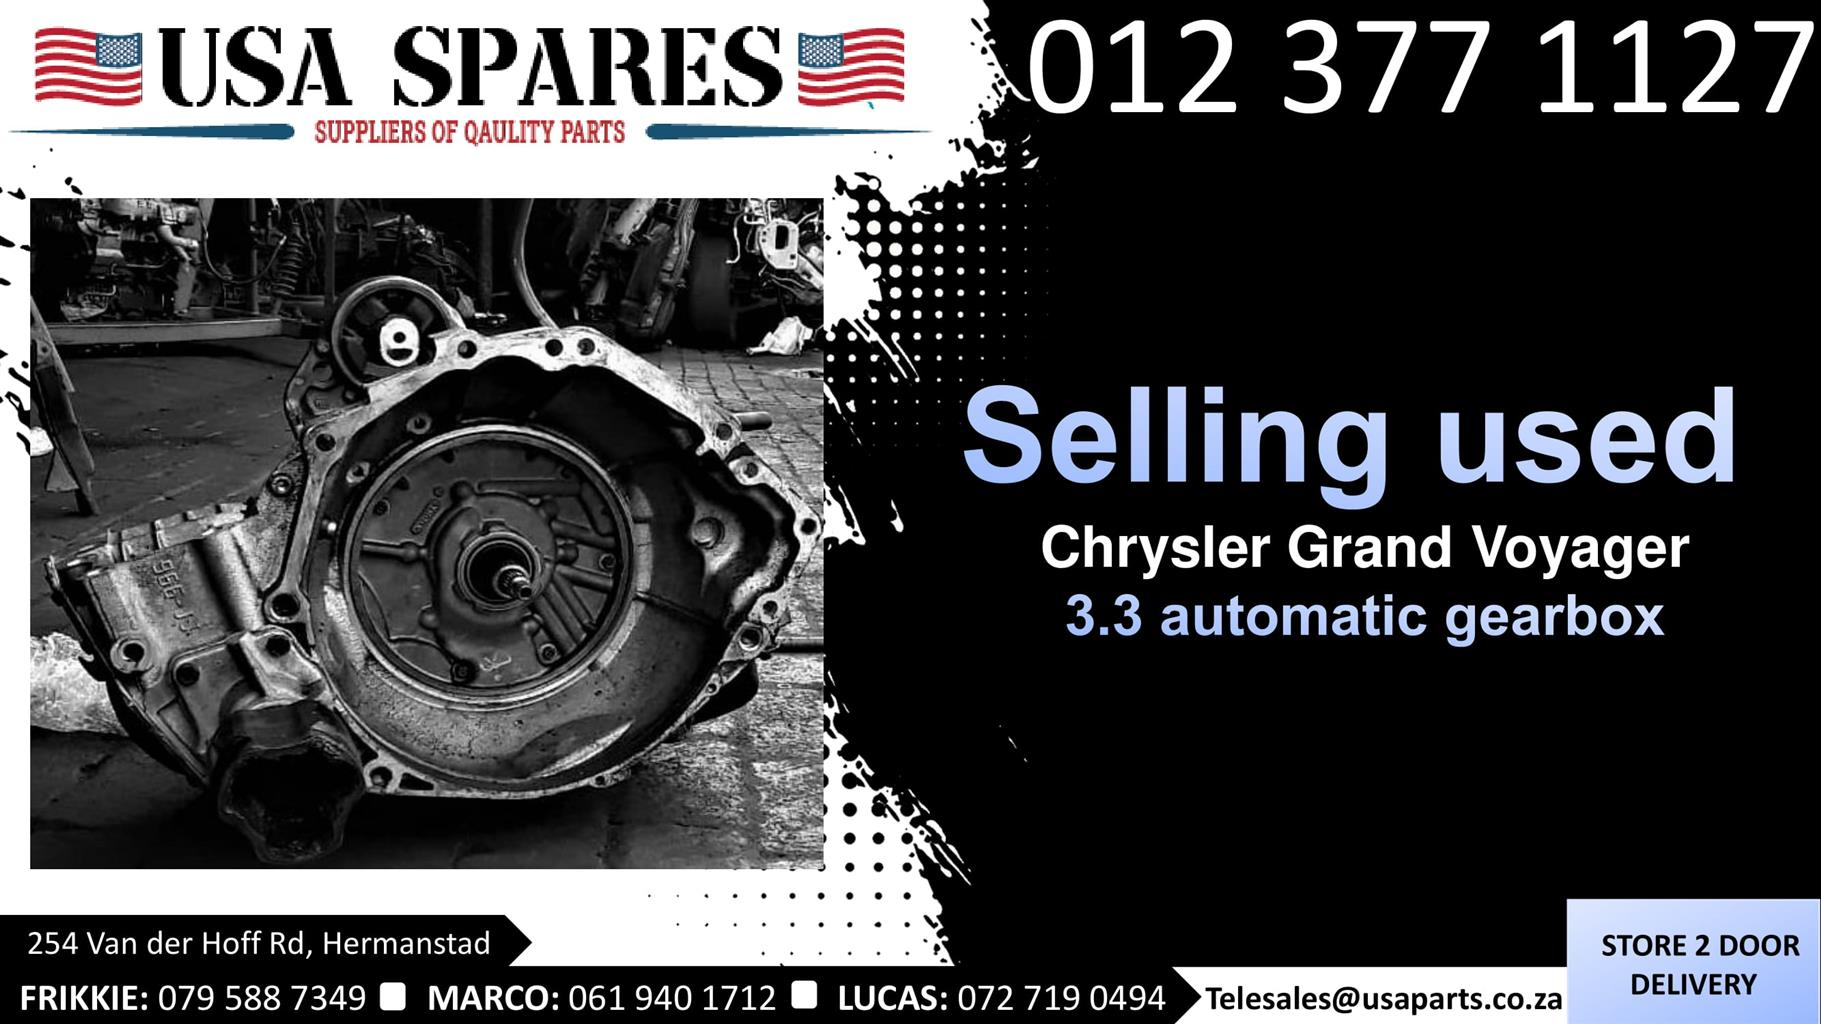 Chrysler Grand Voyager 3.3 used automatic gearbox for sale